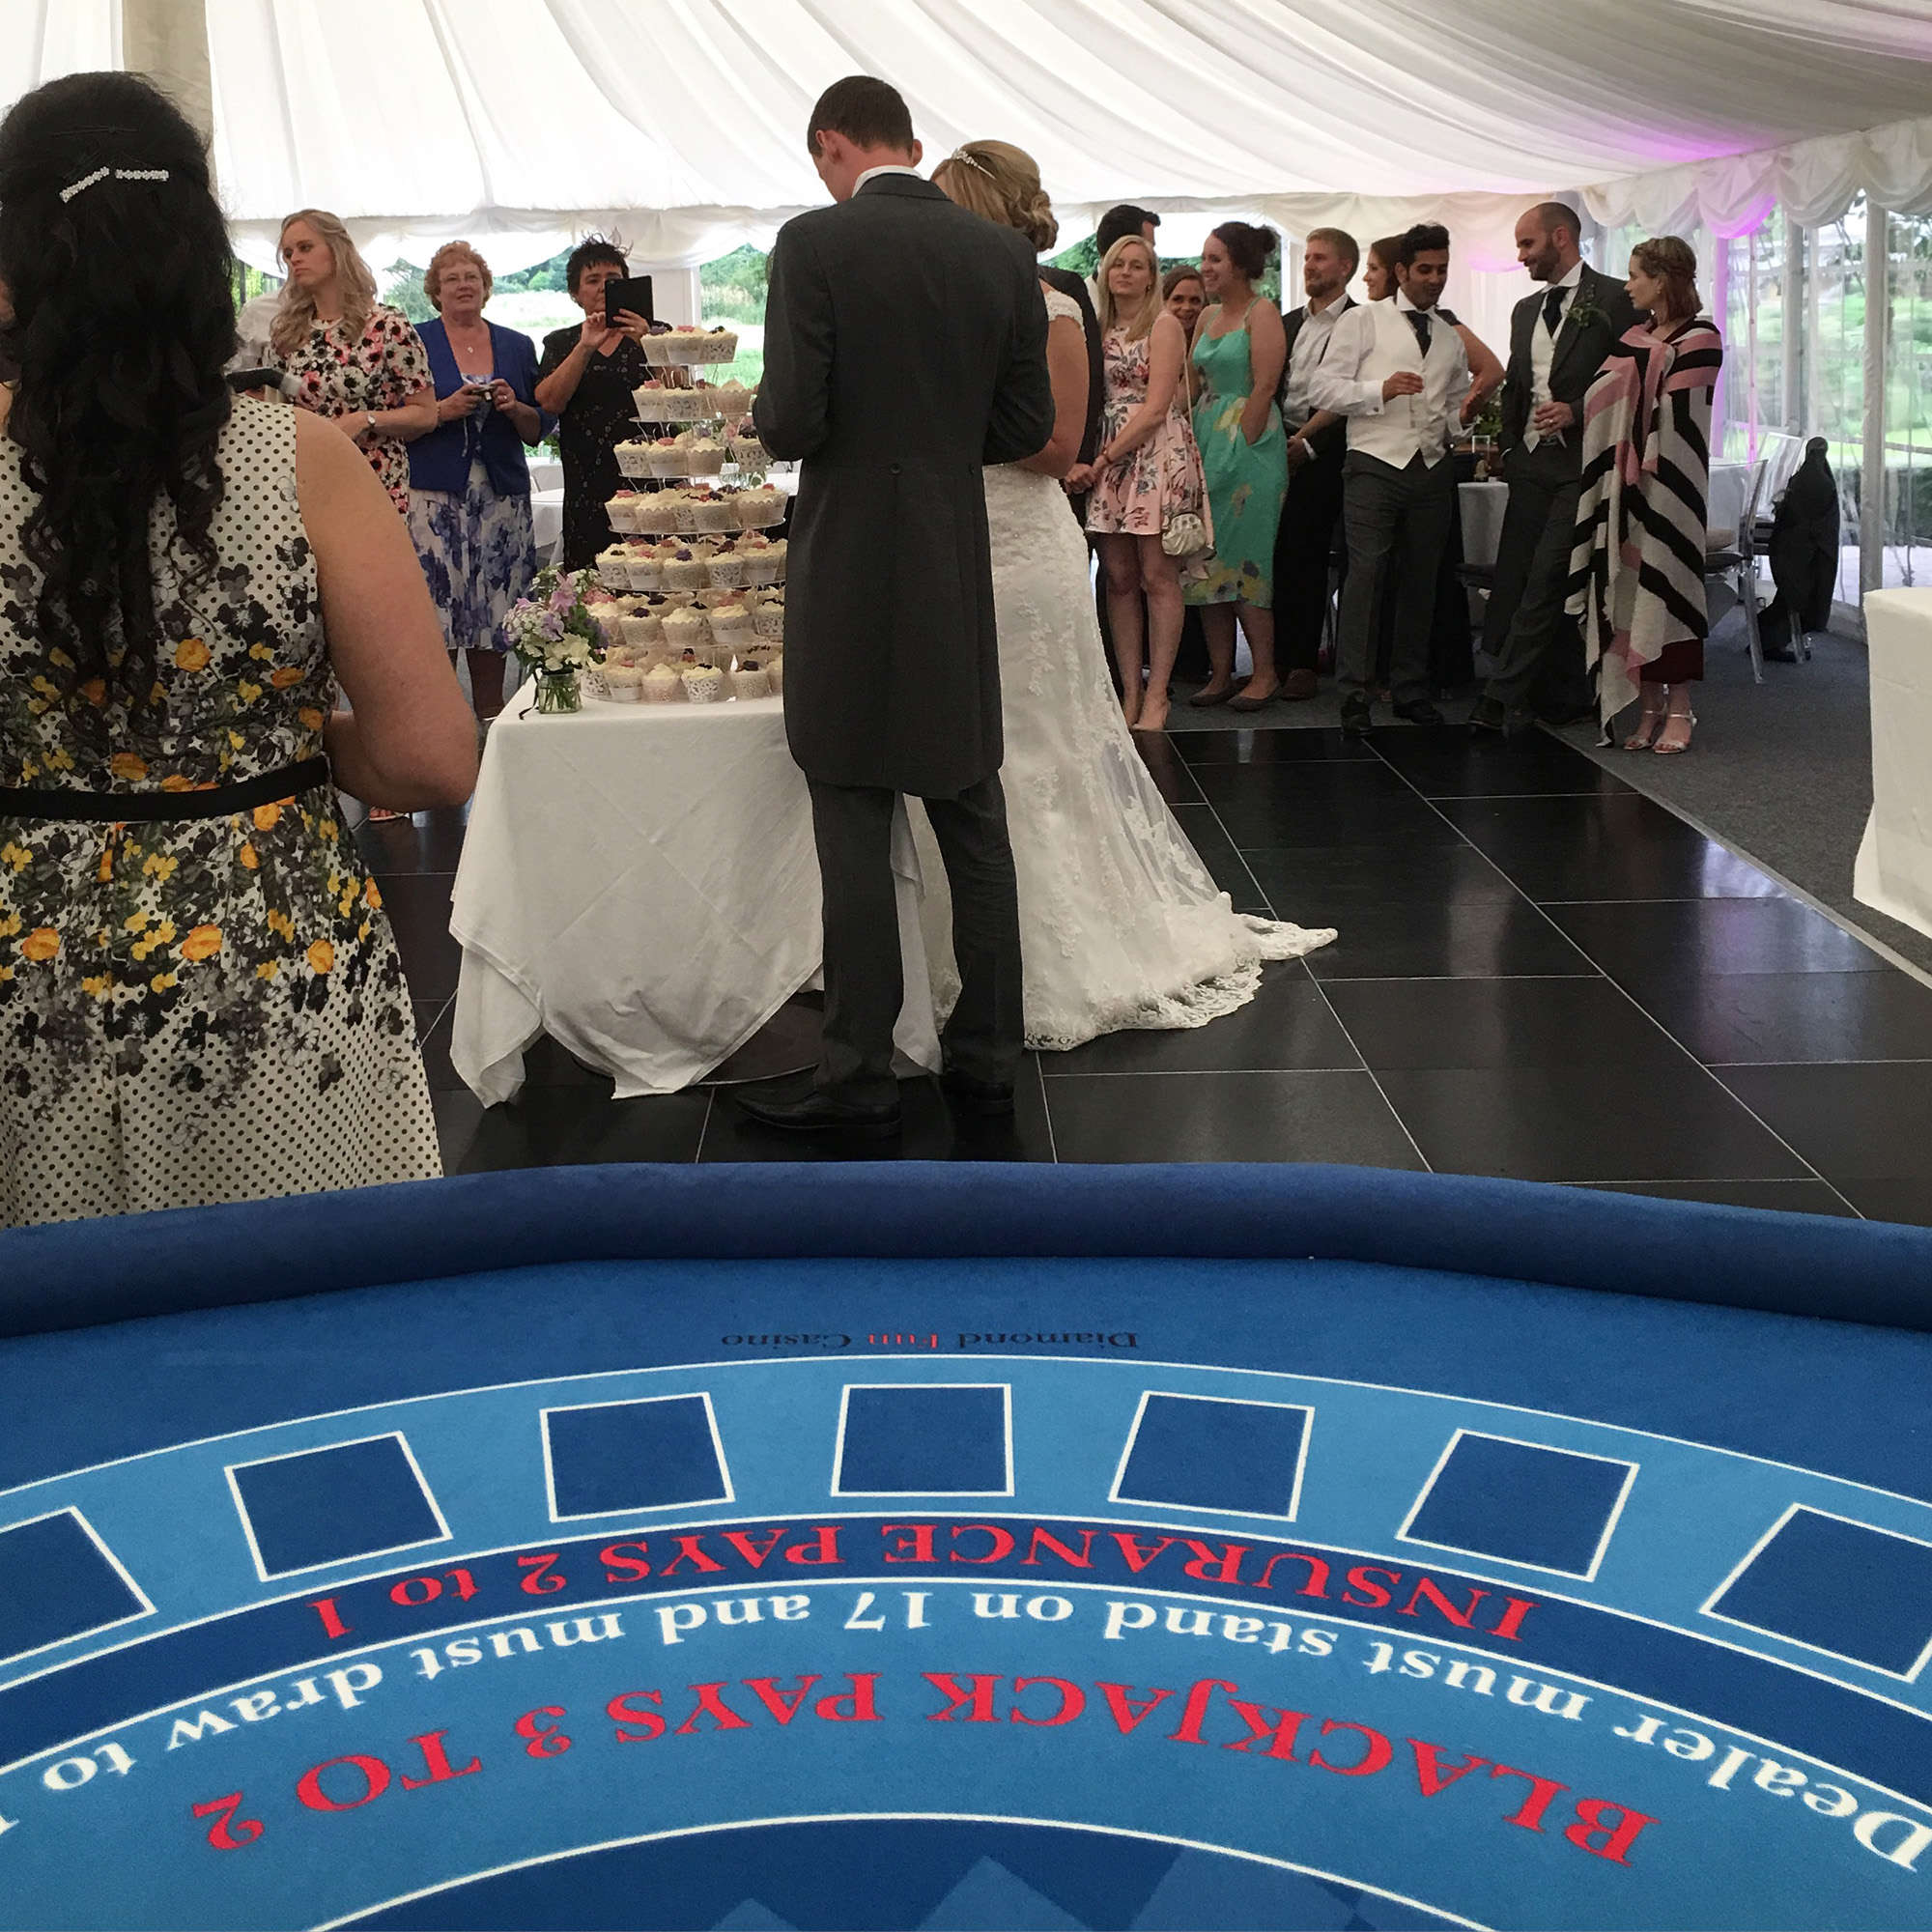 Casino hire at Le Talbooth, Dedham, near Colchester in Essex